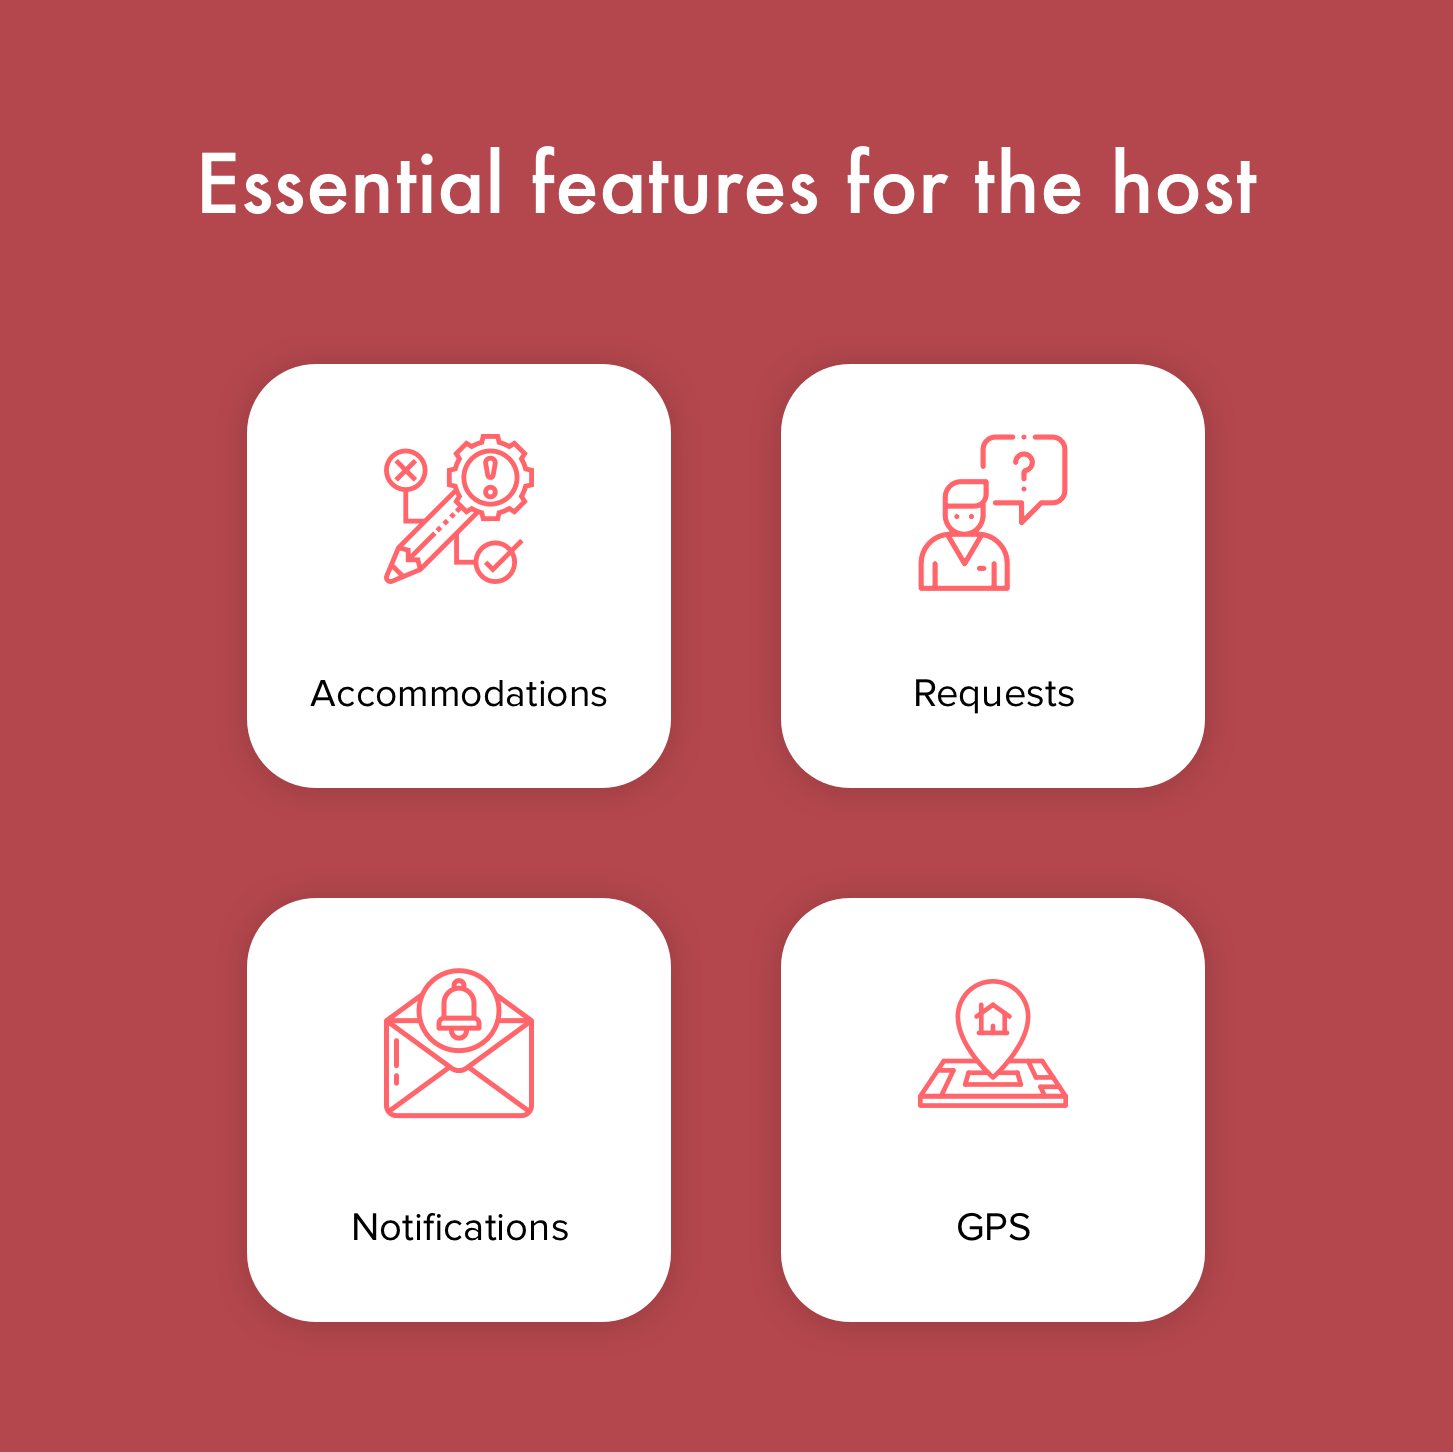 Core Airbnb features for the host